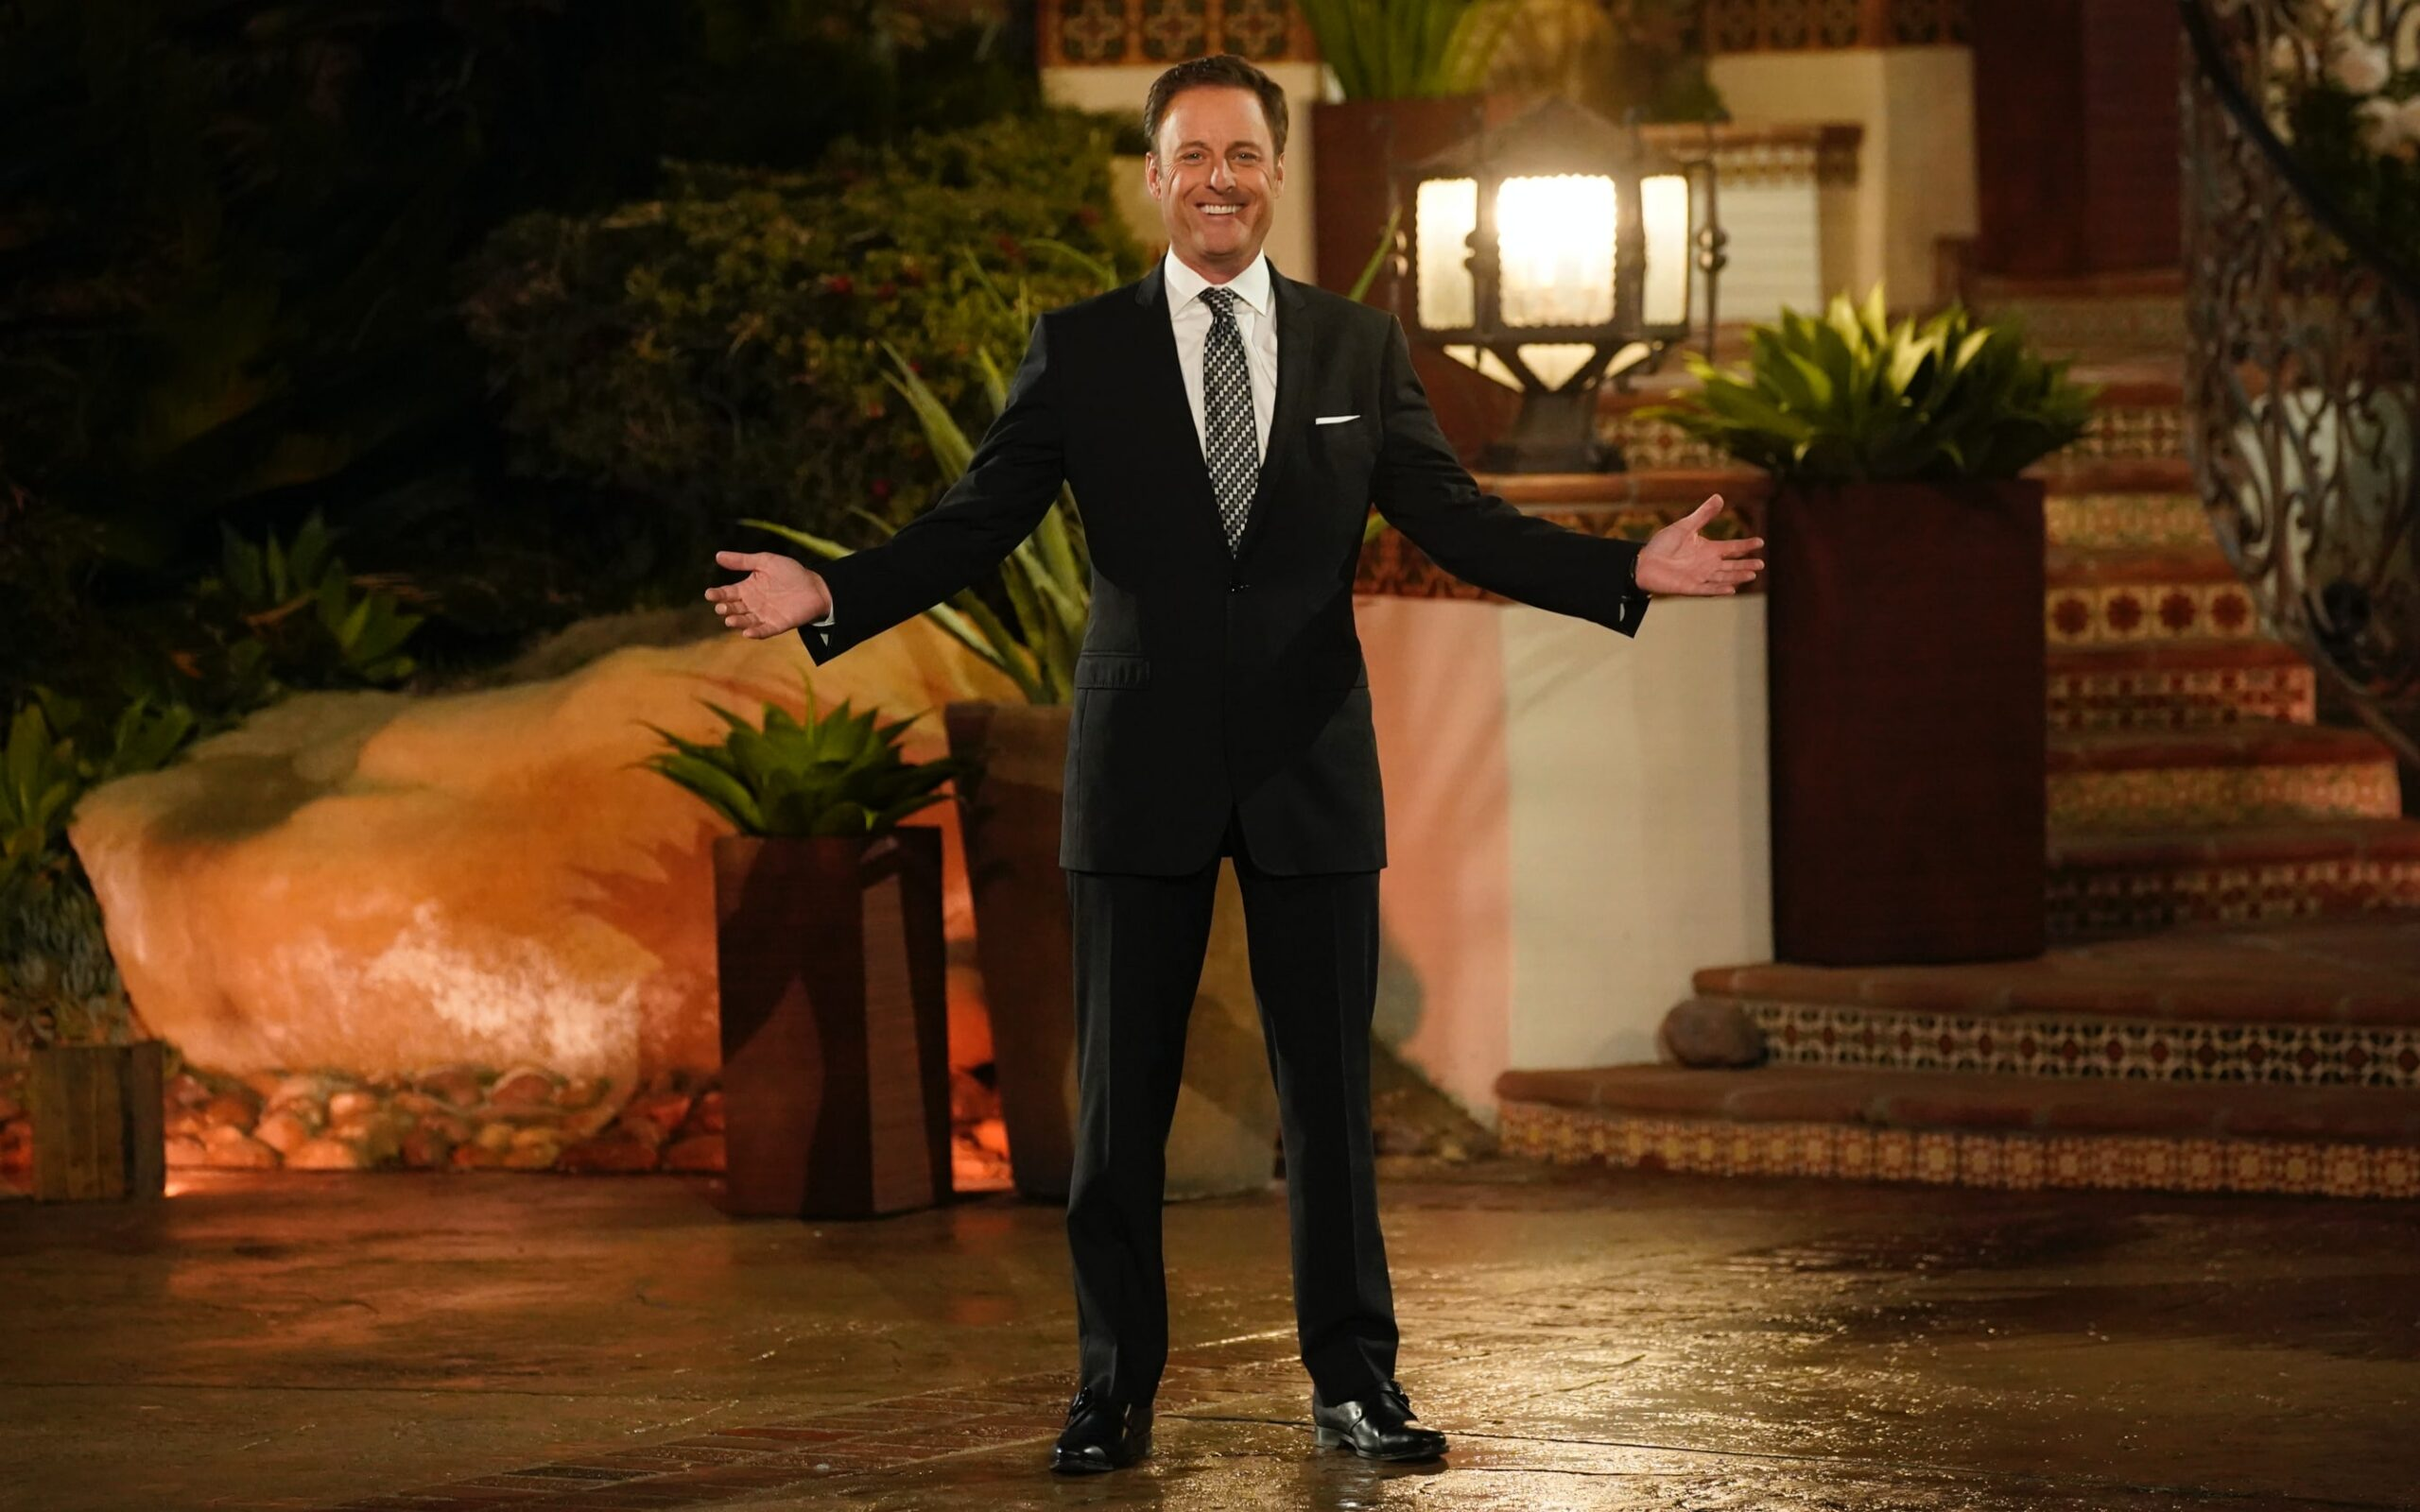 Chris Harrison on The Bachelor mansion's wet driveway, getting ready for The Bachelor: Listen to Your Heart cast members' arrivals